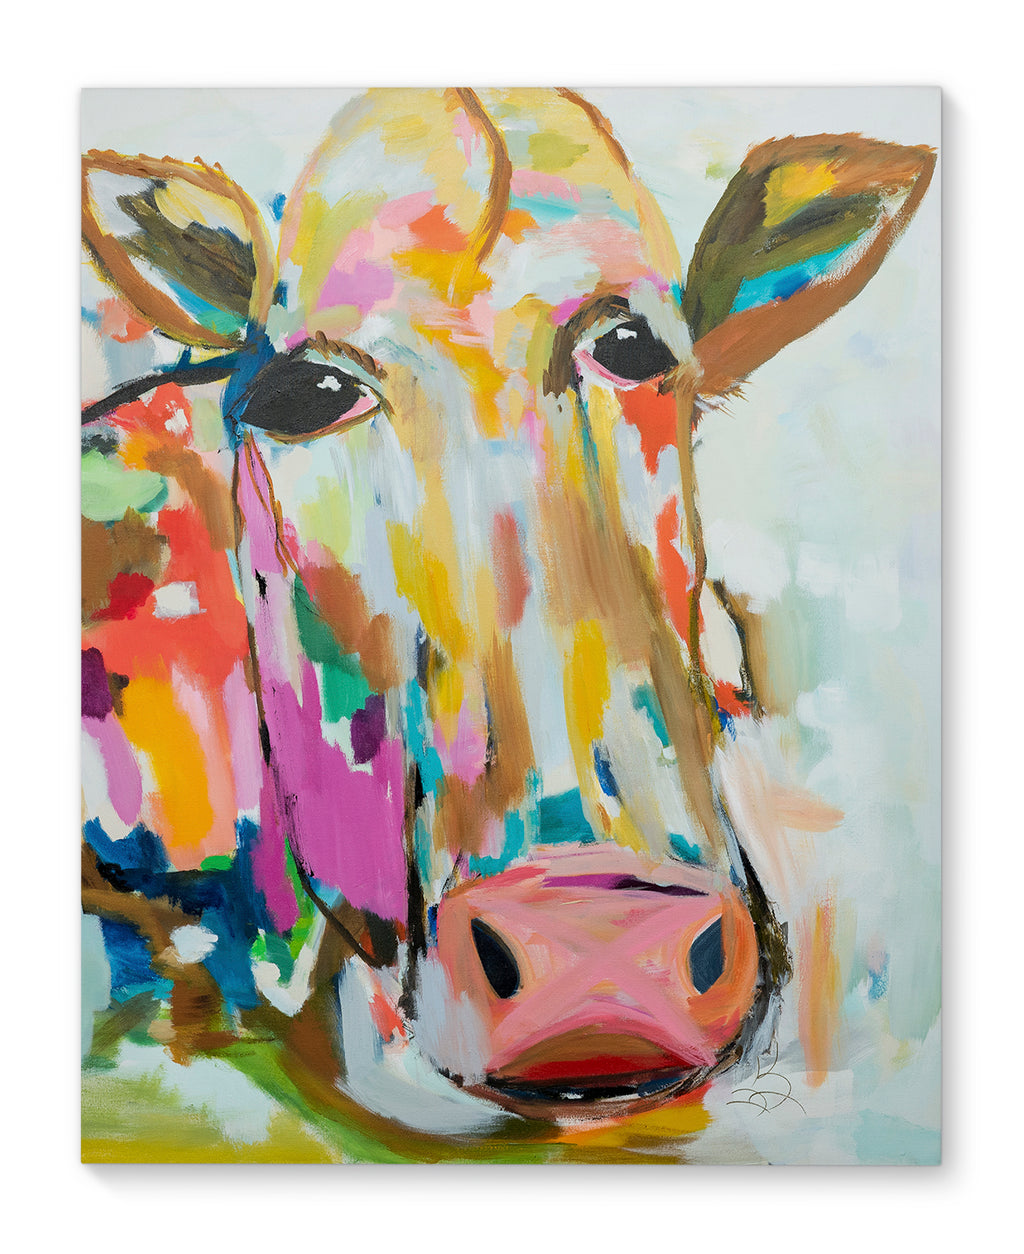 LOOSE MILK  Canvas Art By Susan Skelley